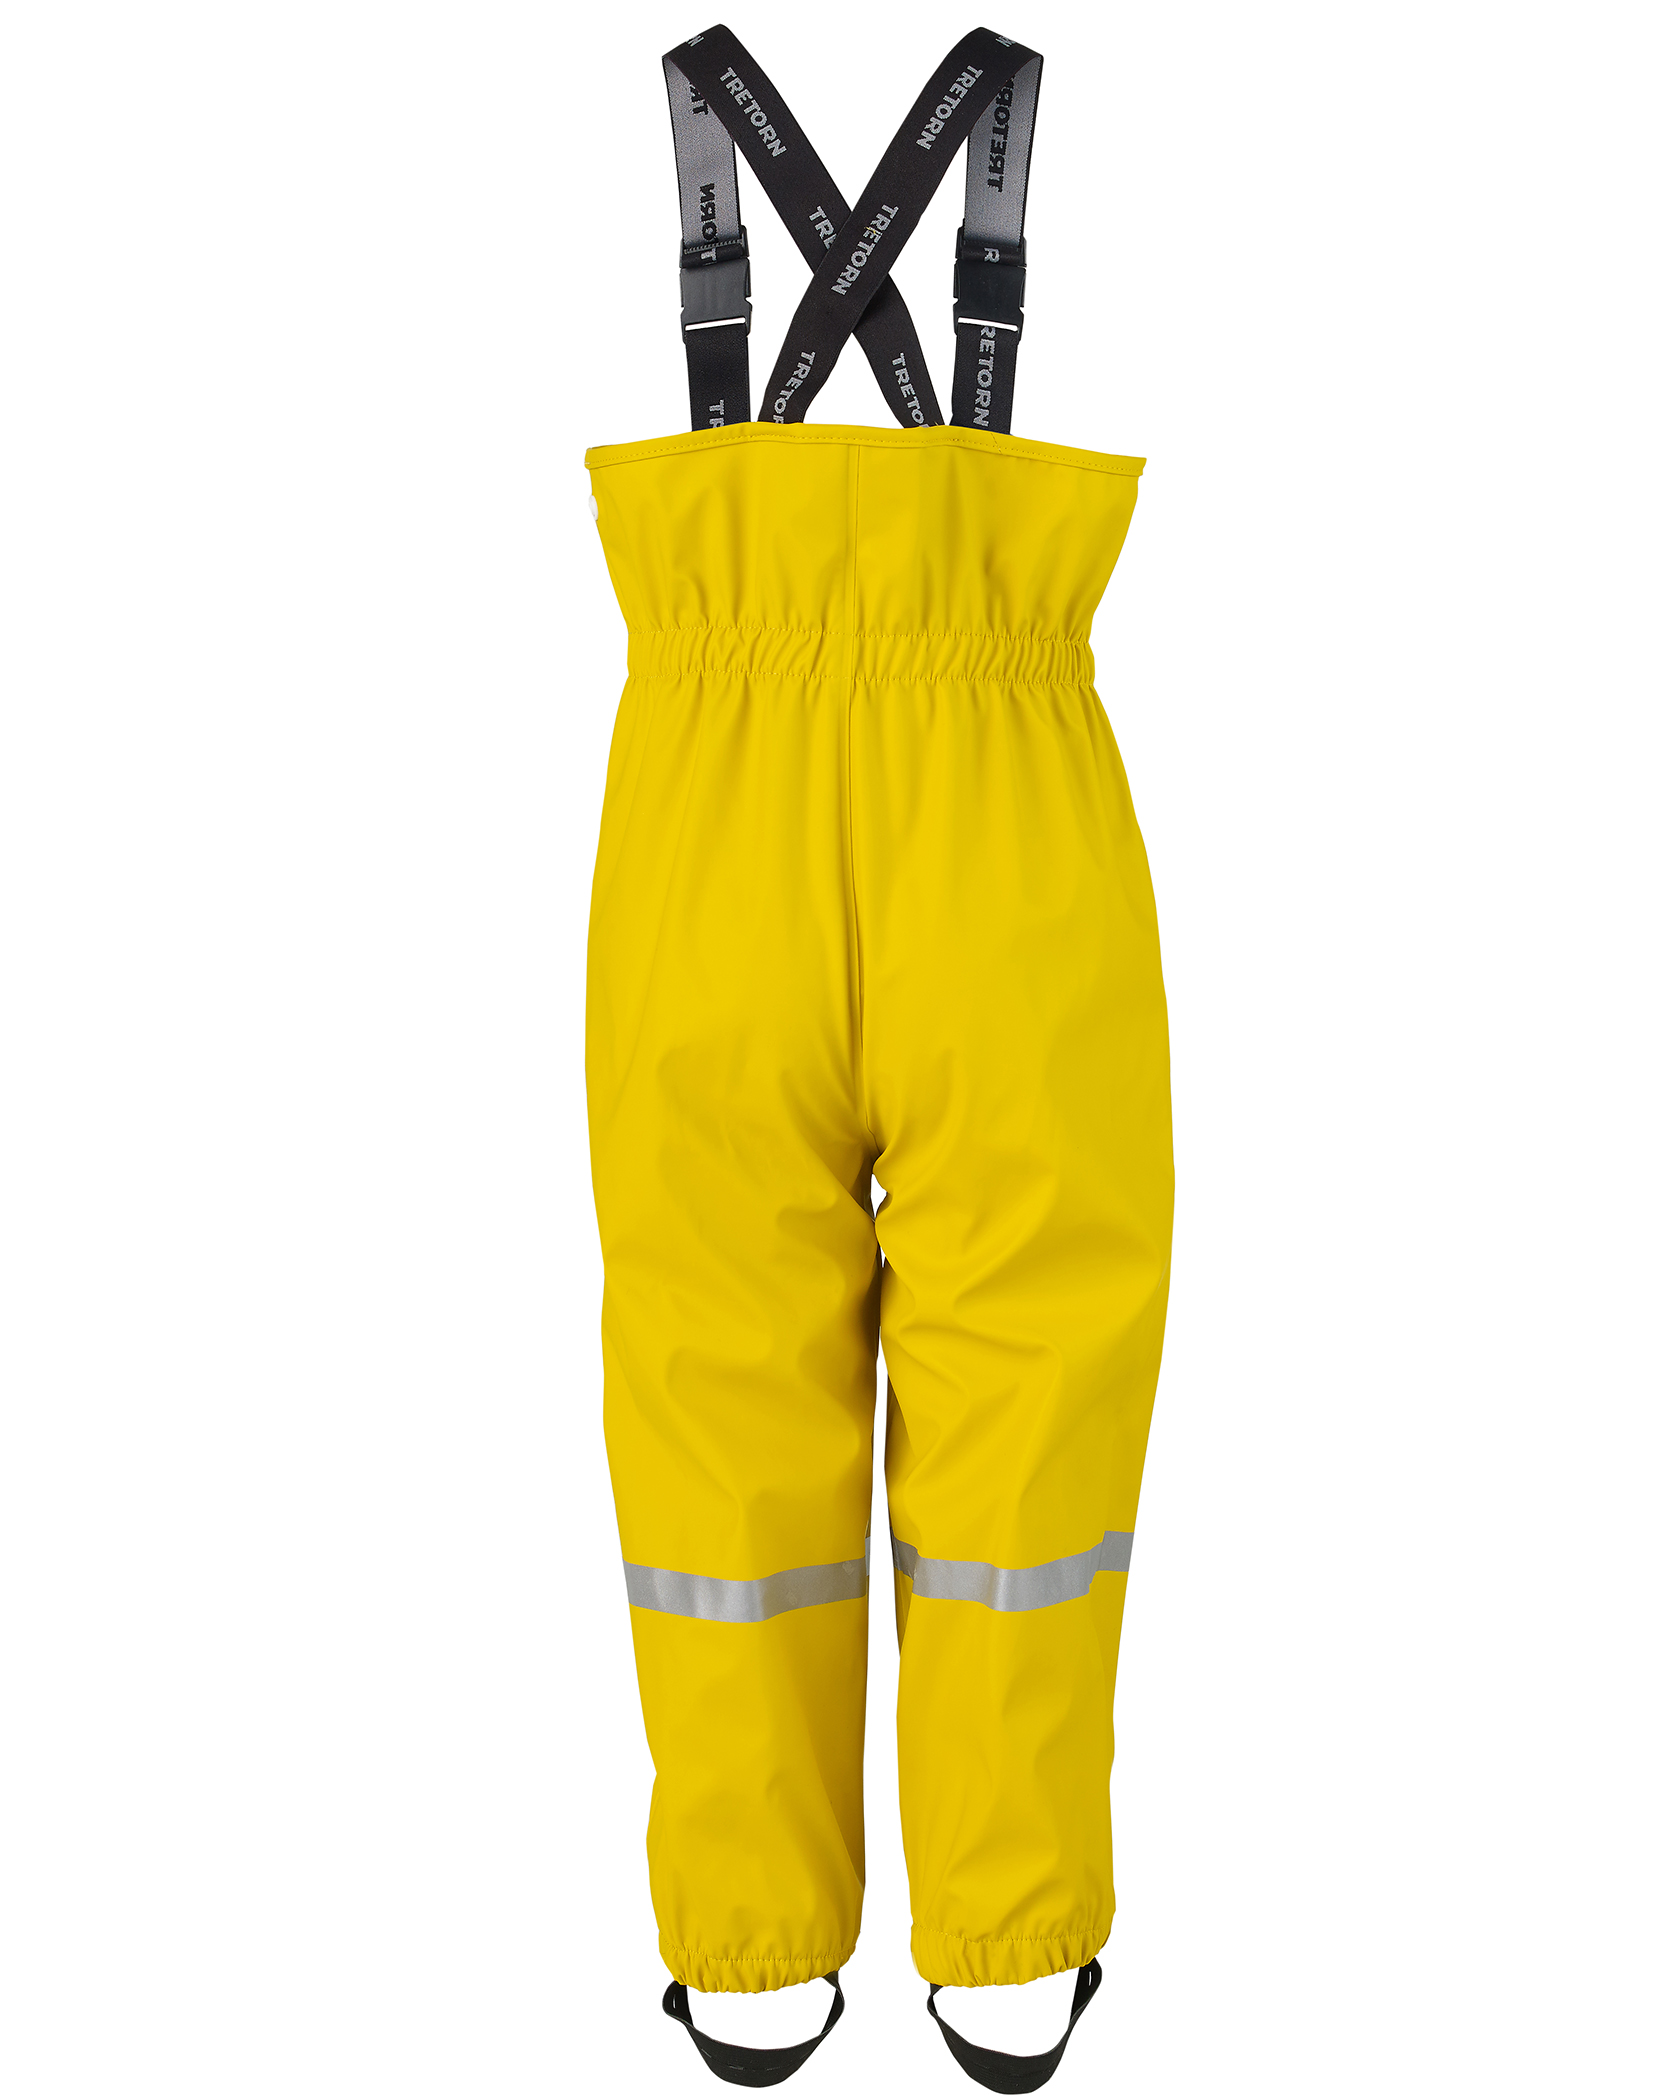 High Kids Rainpant Spectra Yellow